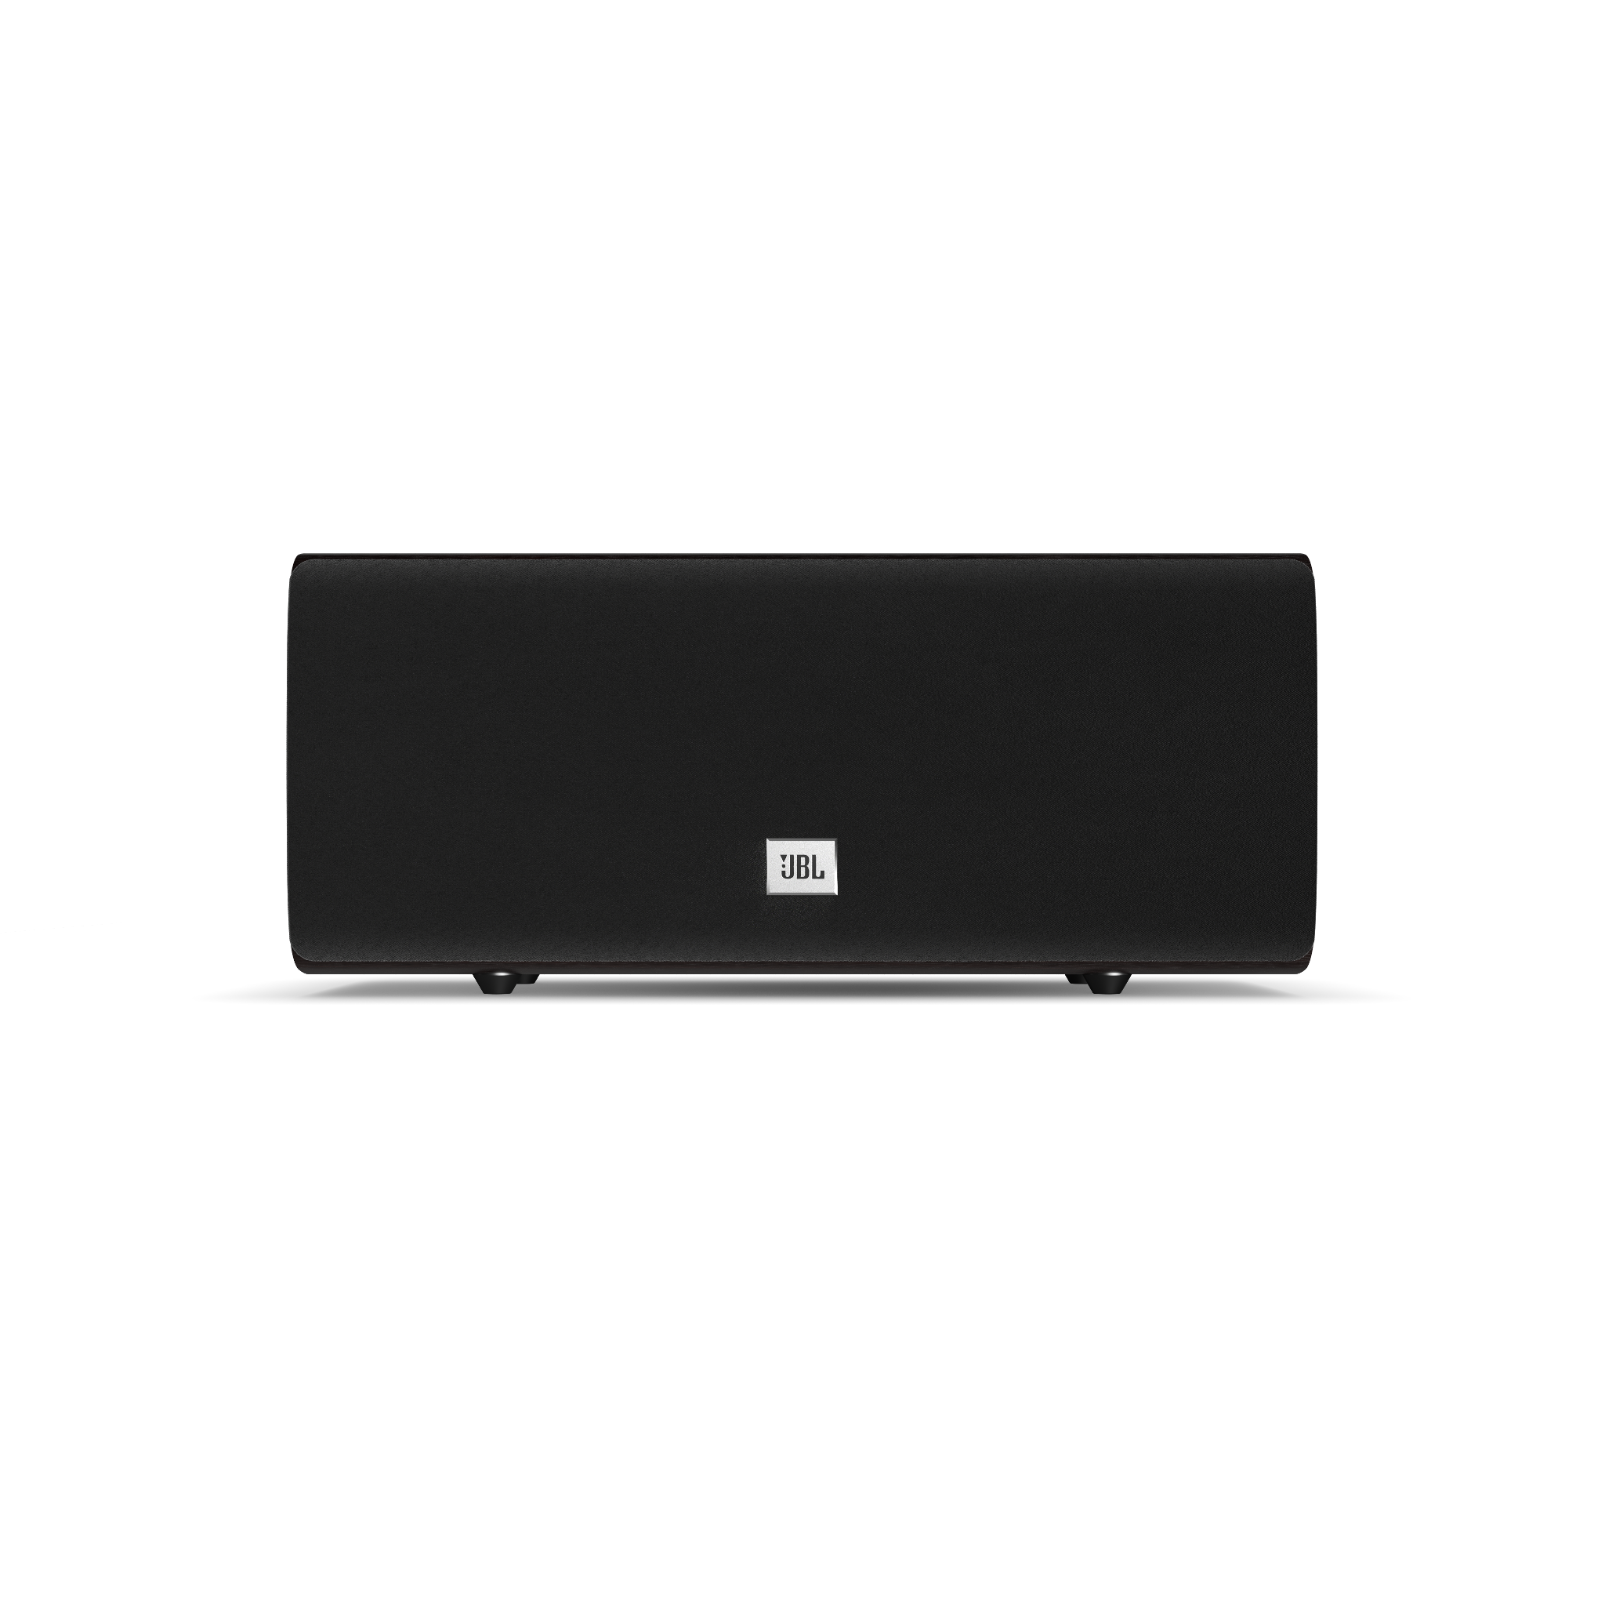 JBL STUDIO 625C - Dark Wood - Home Audio Loudspeaker System - Front